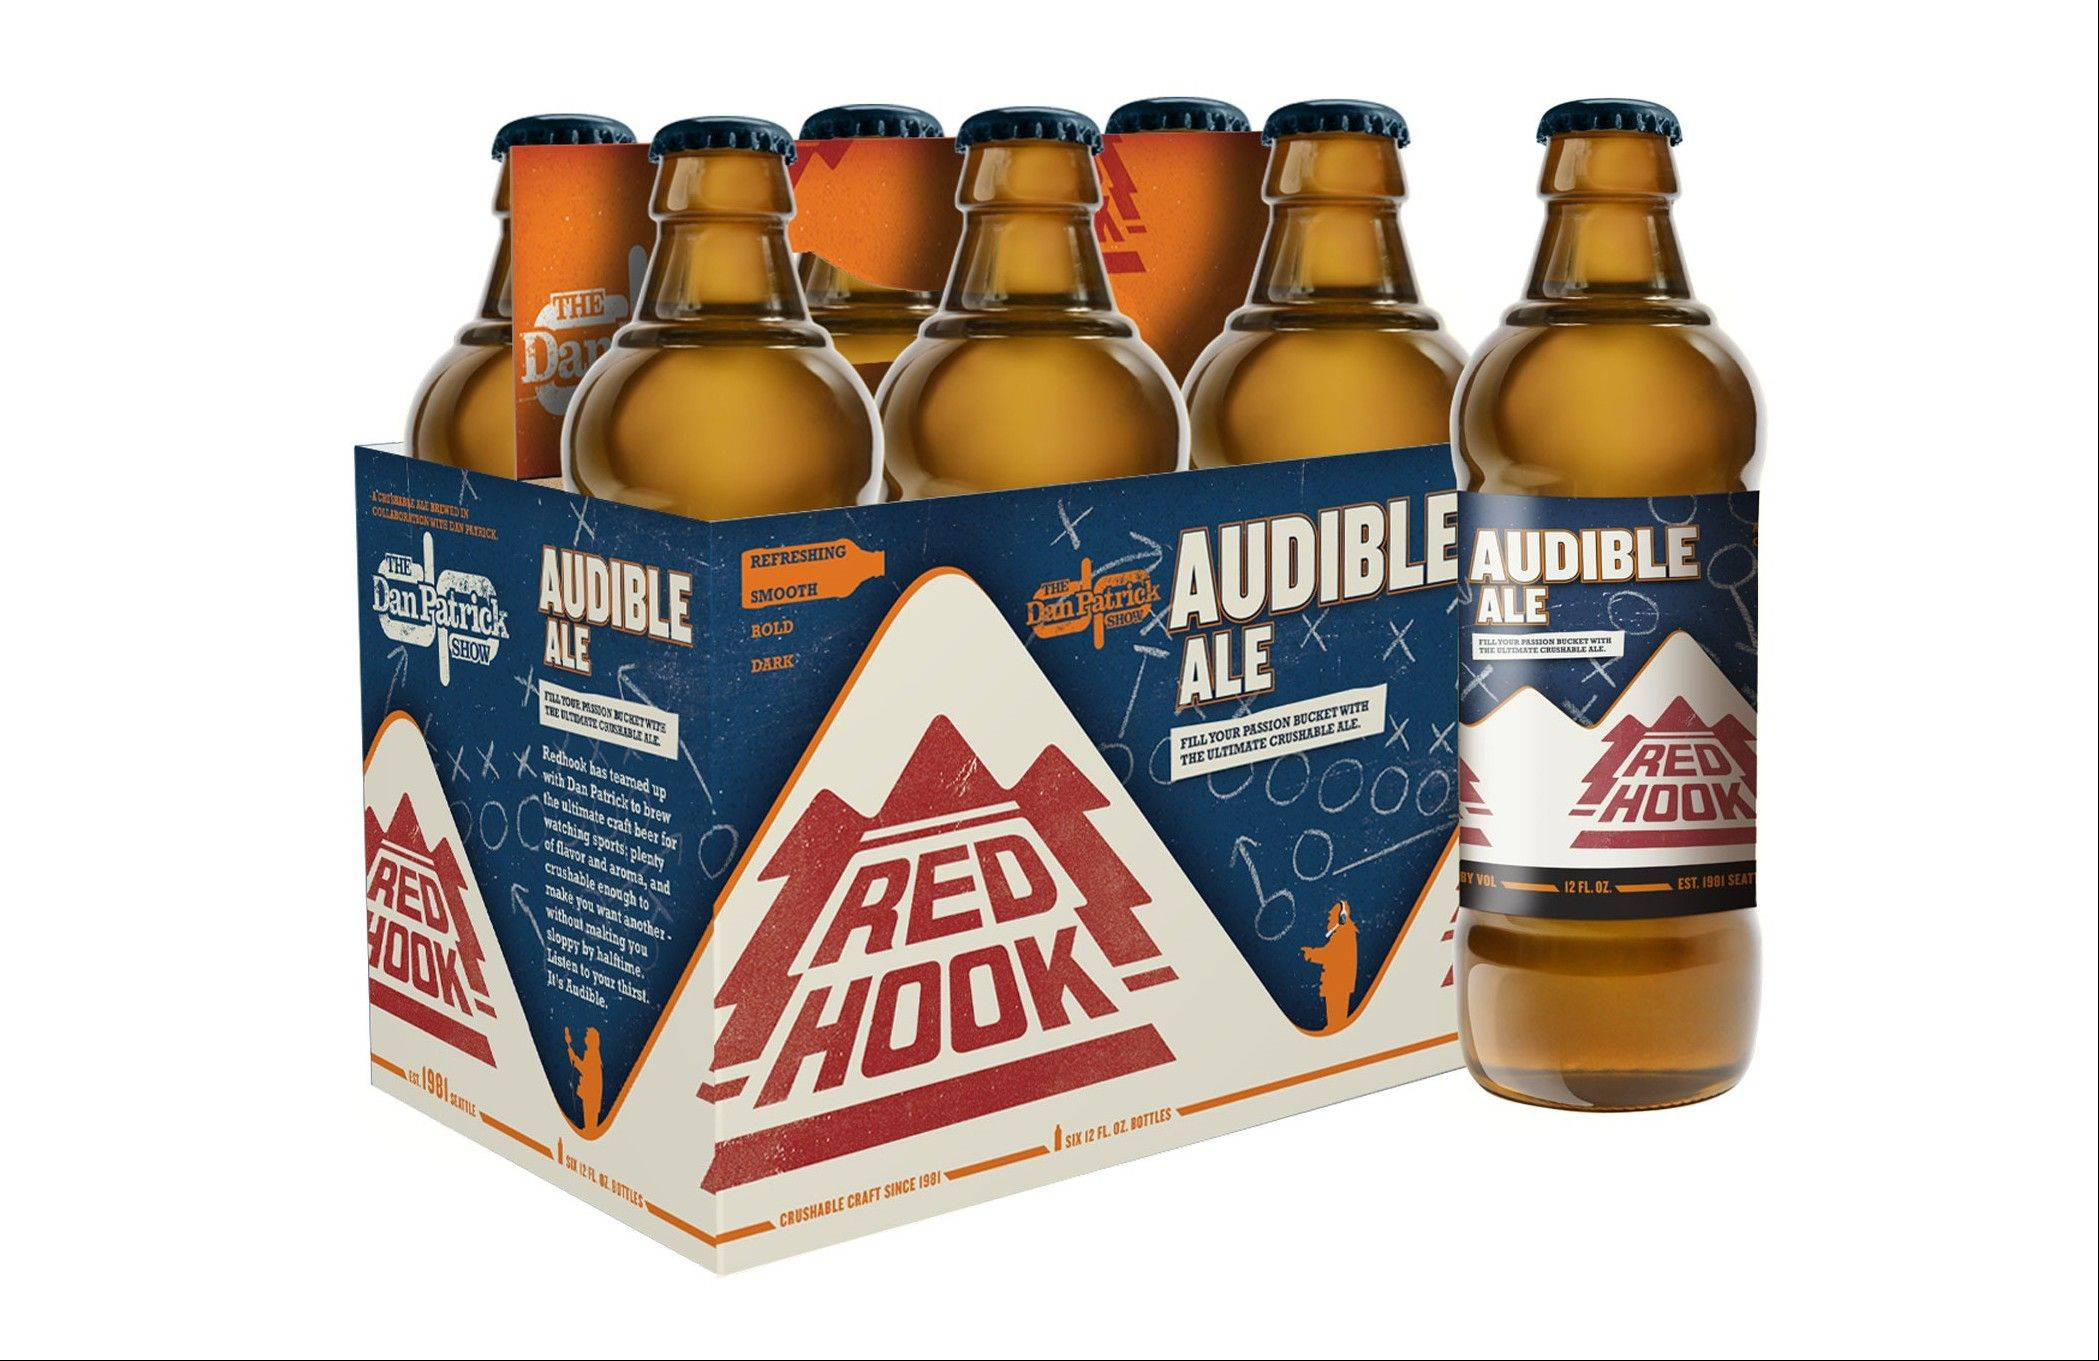 Red Hook Brewery makes Audible Ale, which refers to the term when a team changes its play at the line of scrimmage, is a medium-bodied beer with a mild hop bitterness.